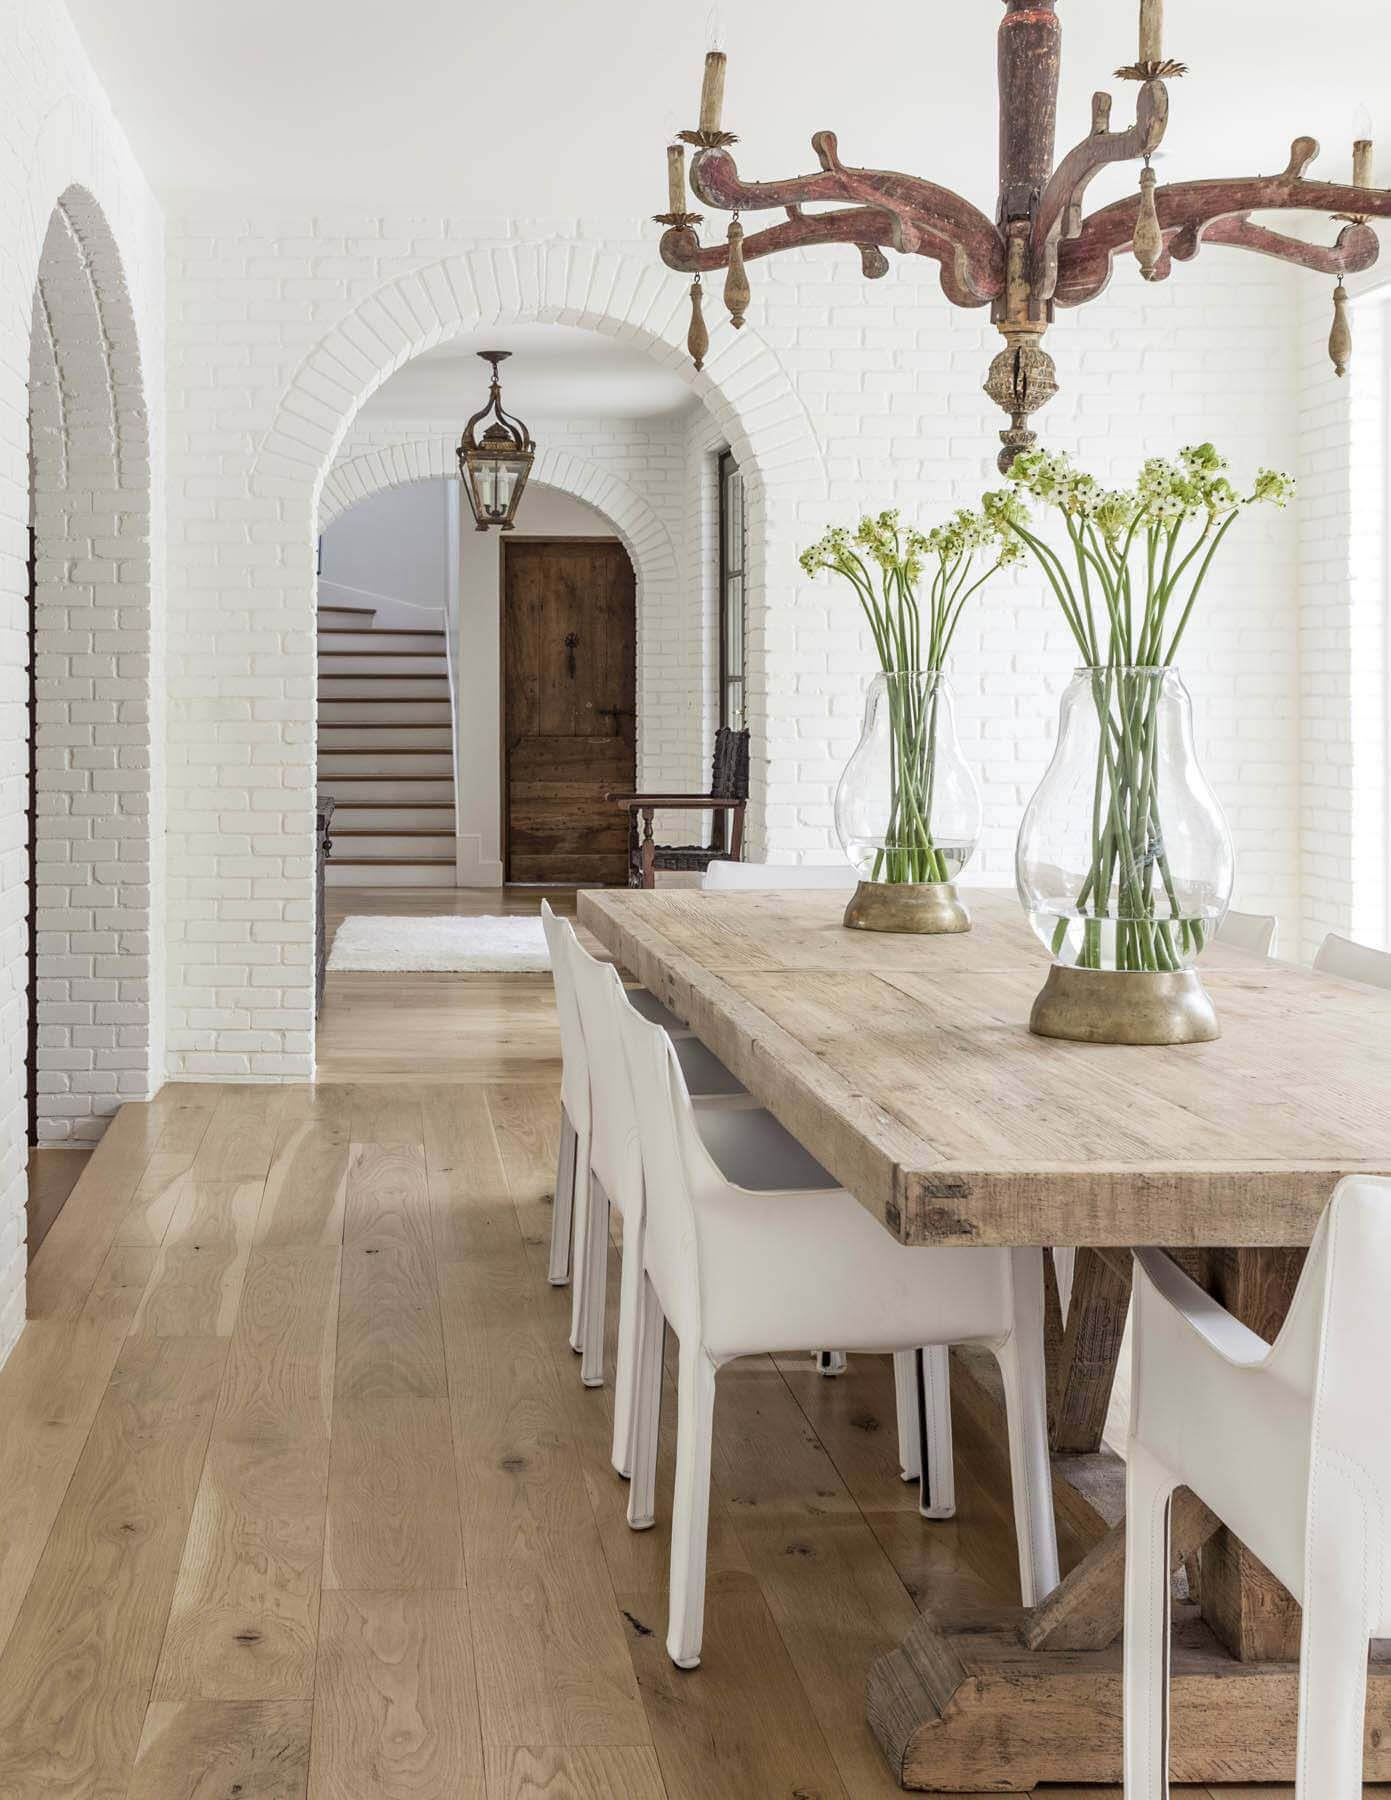 Dining room with natural wood table and white chairs